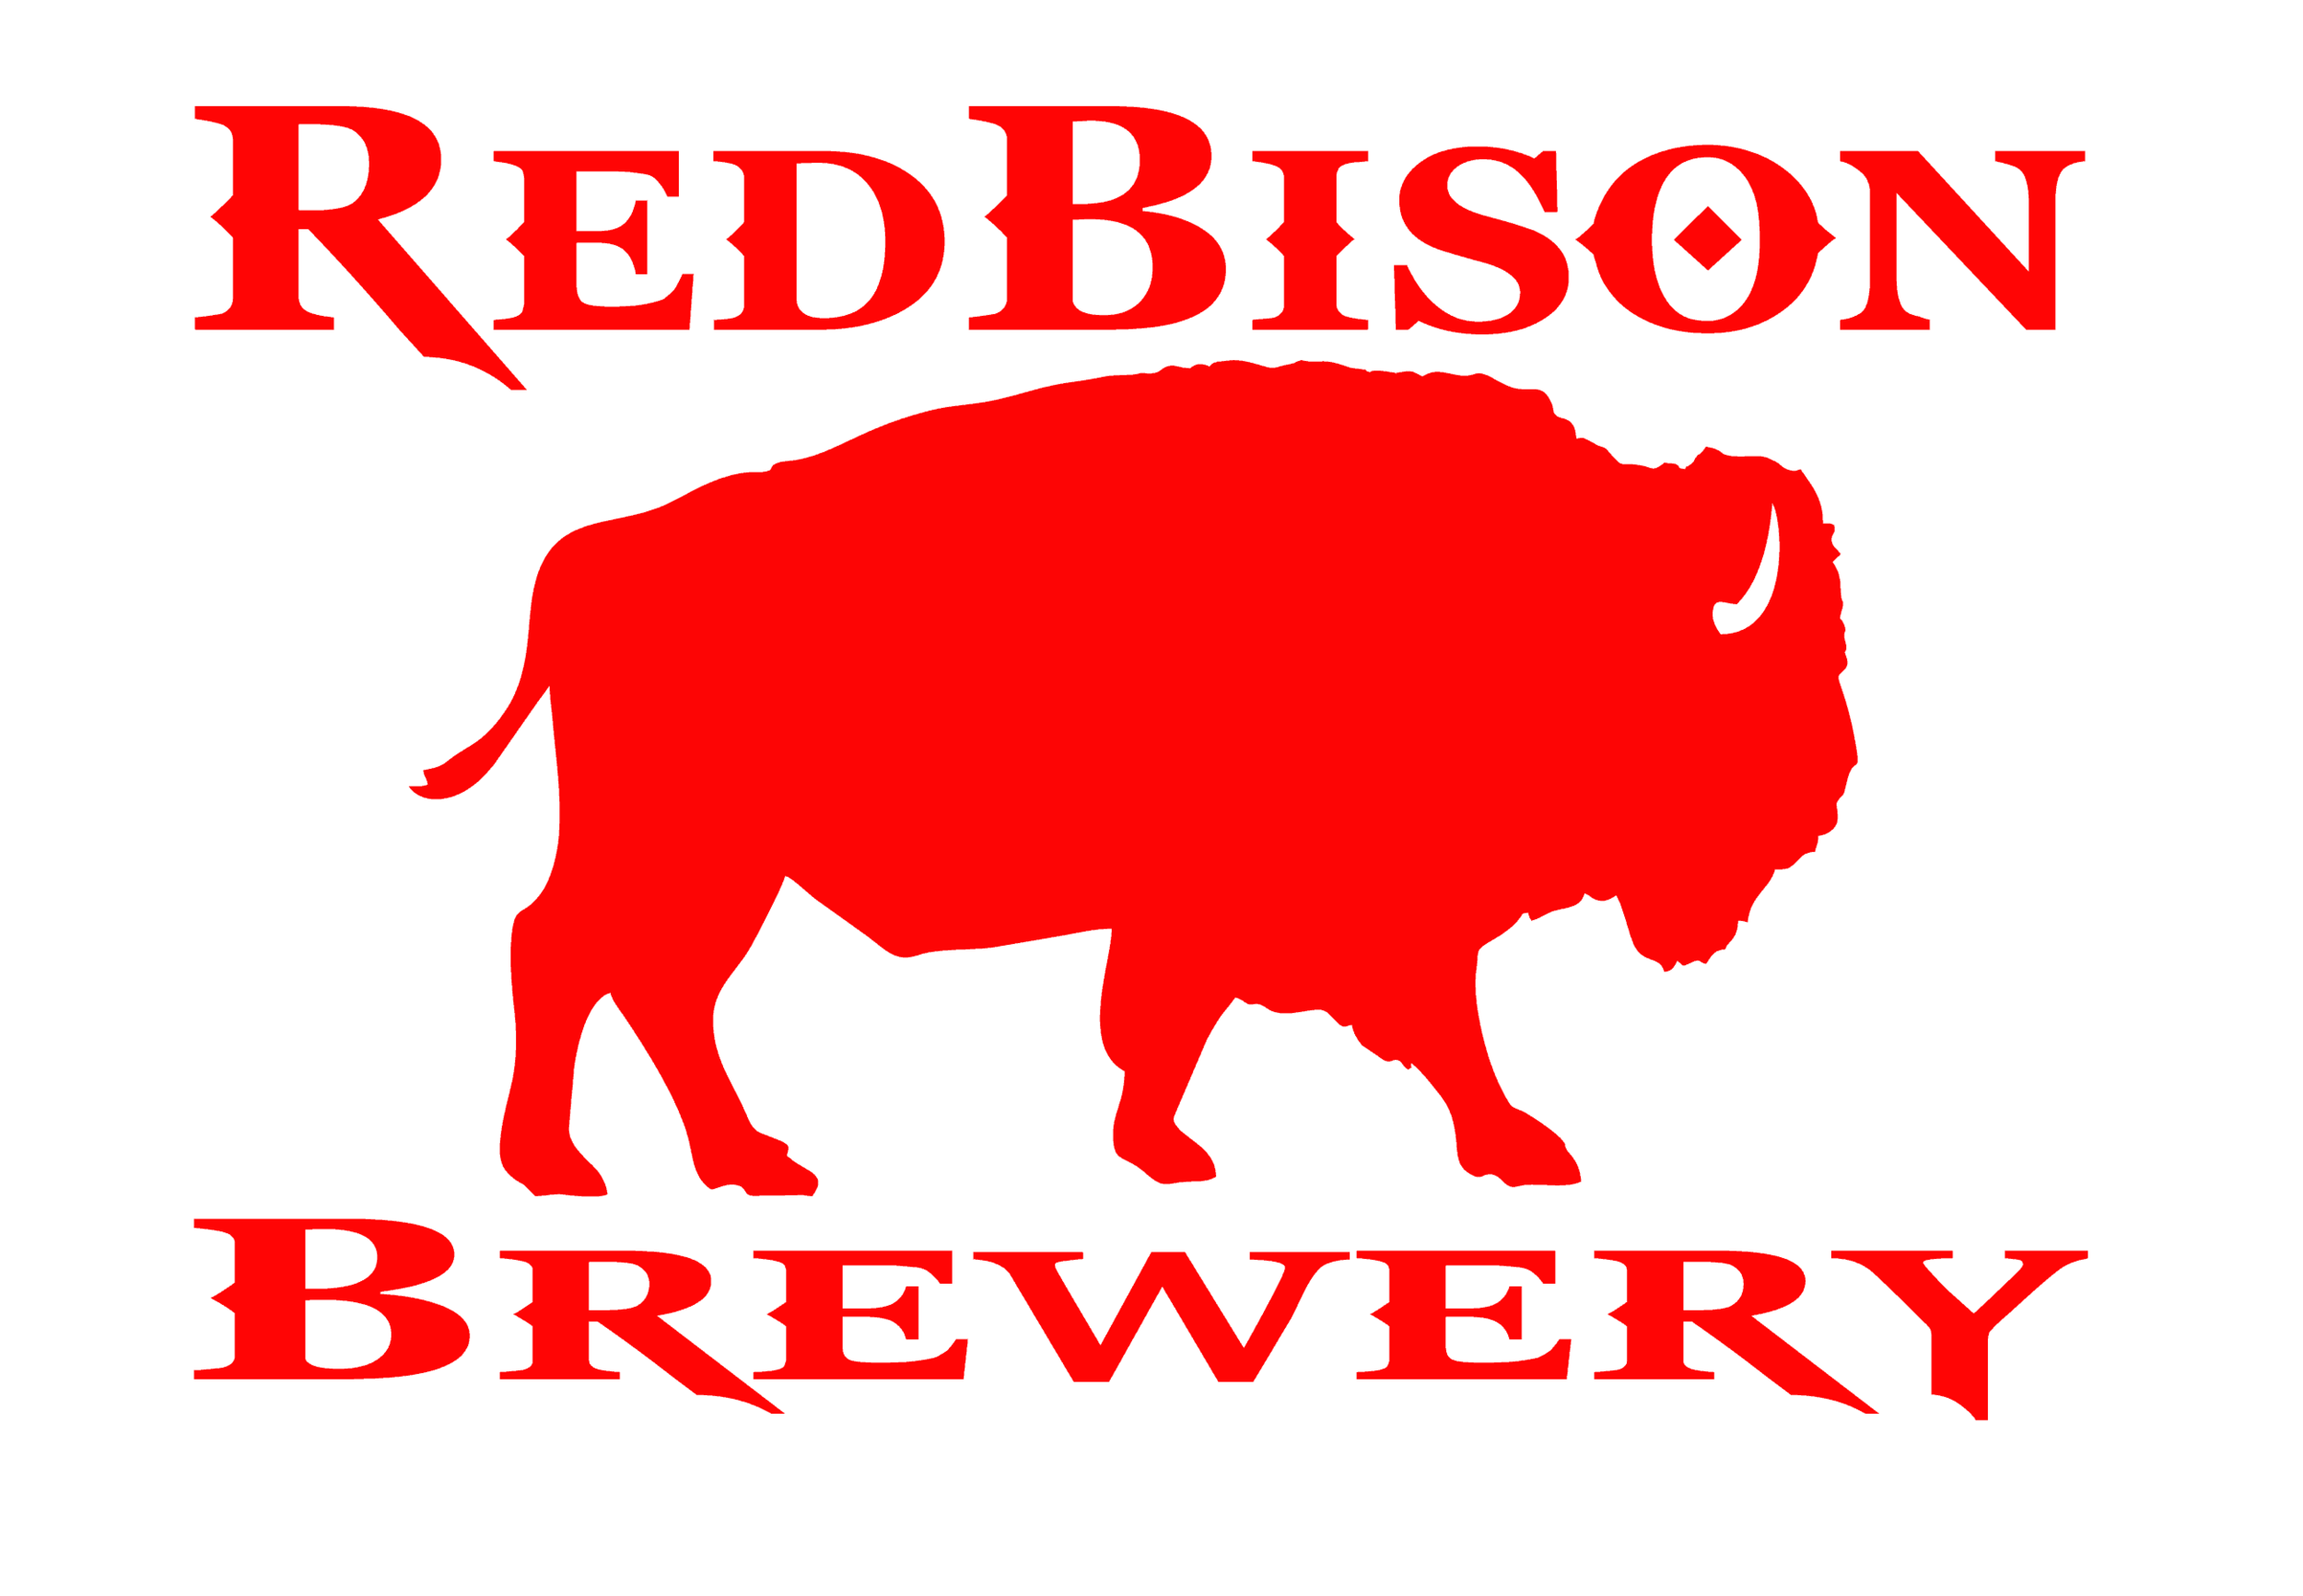 RED BISON BREWERY   __________  The BISON is calling! Stop by the Red Bison taproom for $5 20oz pints of the smooth & refreshing  First Move Blonde Ale . 64oz growler fills are ALSO on special for only $10!  If you're new to craft beer, this beer was specially designed for you! Similar in taste to mainstream lagers or pilsners, but brewed locally and with better ingredients!  In support of:  Give a Mile    Want a FREE ride?  Check out the   events page   and hop on the free  YYC Brew Bus  Wednesday, June 5!